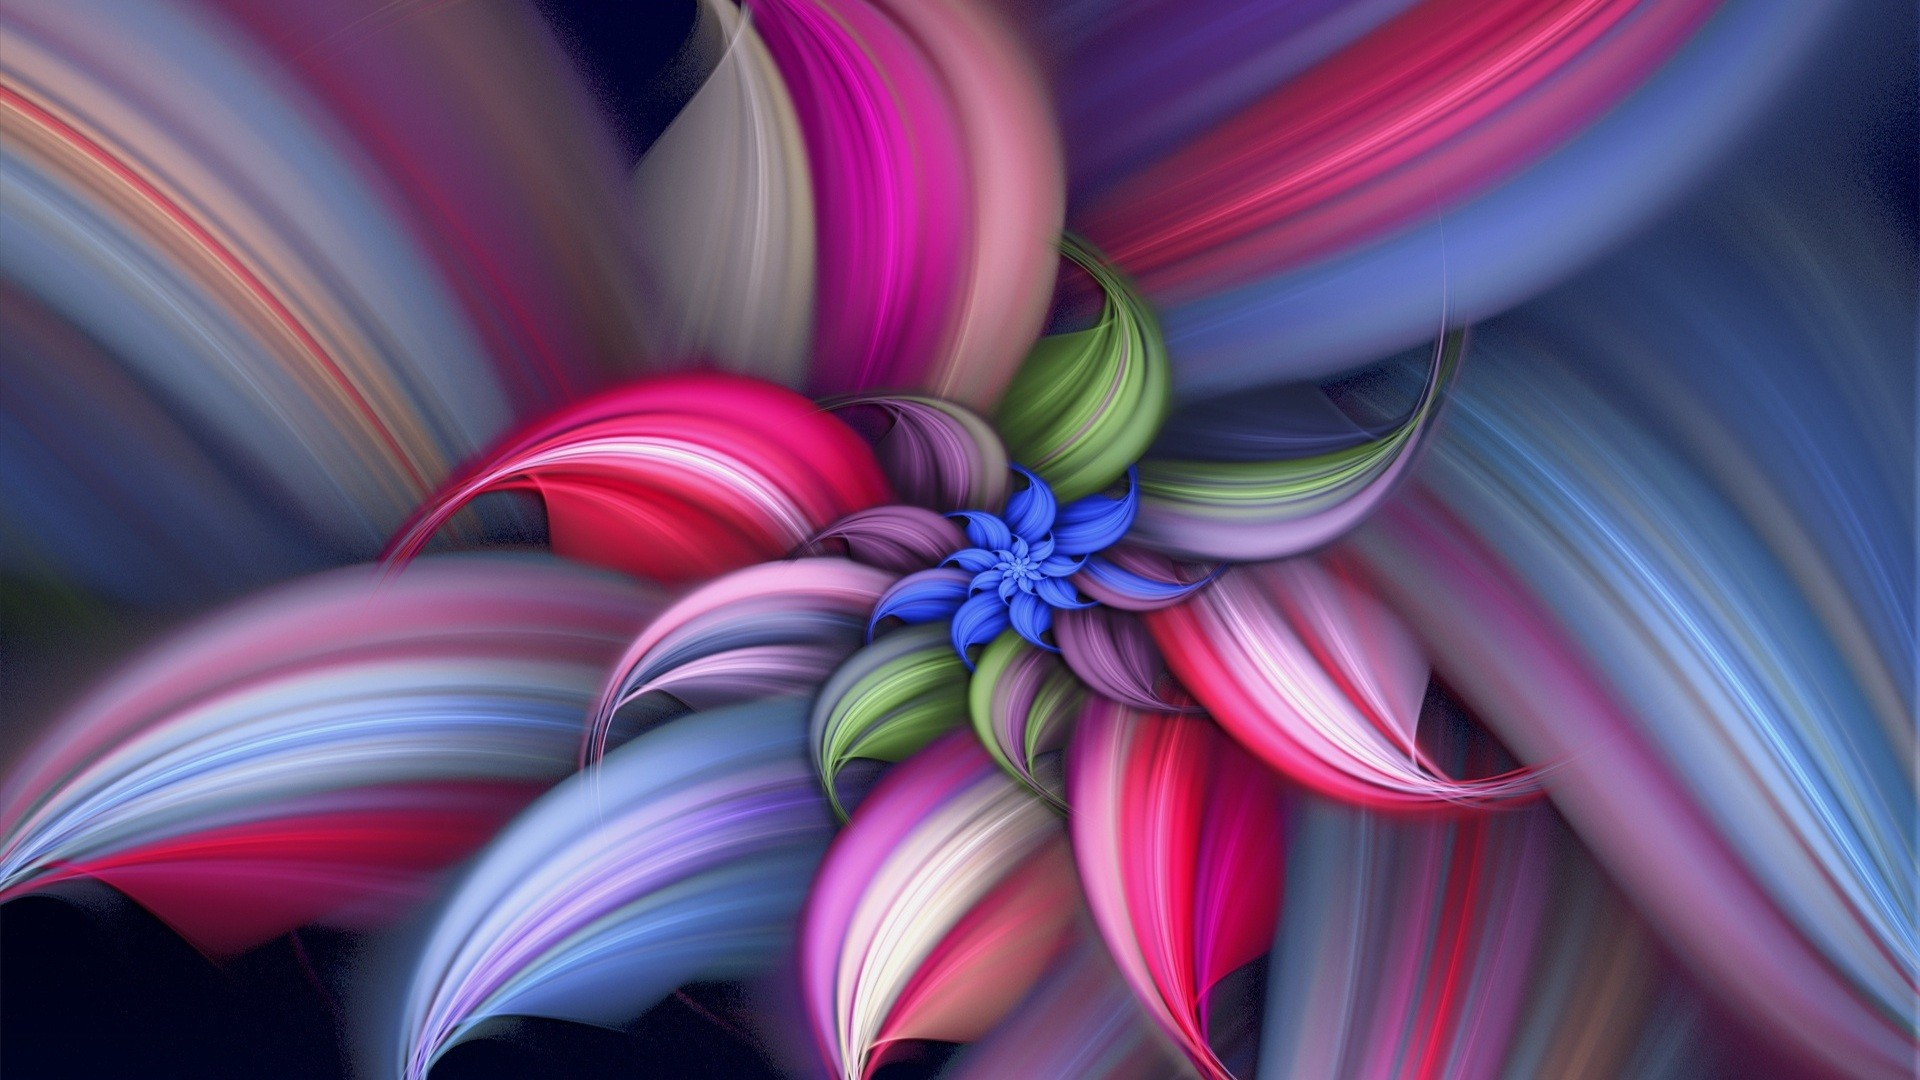 Abstract Flower Vector Design HD Wallpaper Abstract Flower Vector Wallpaper